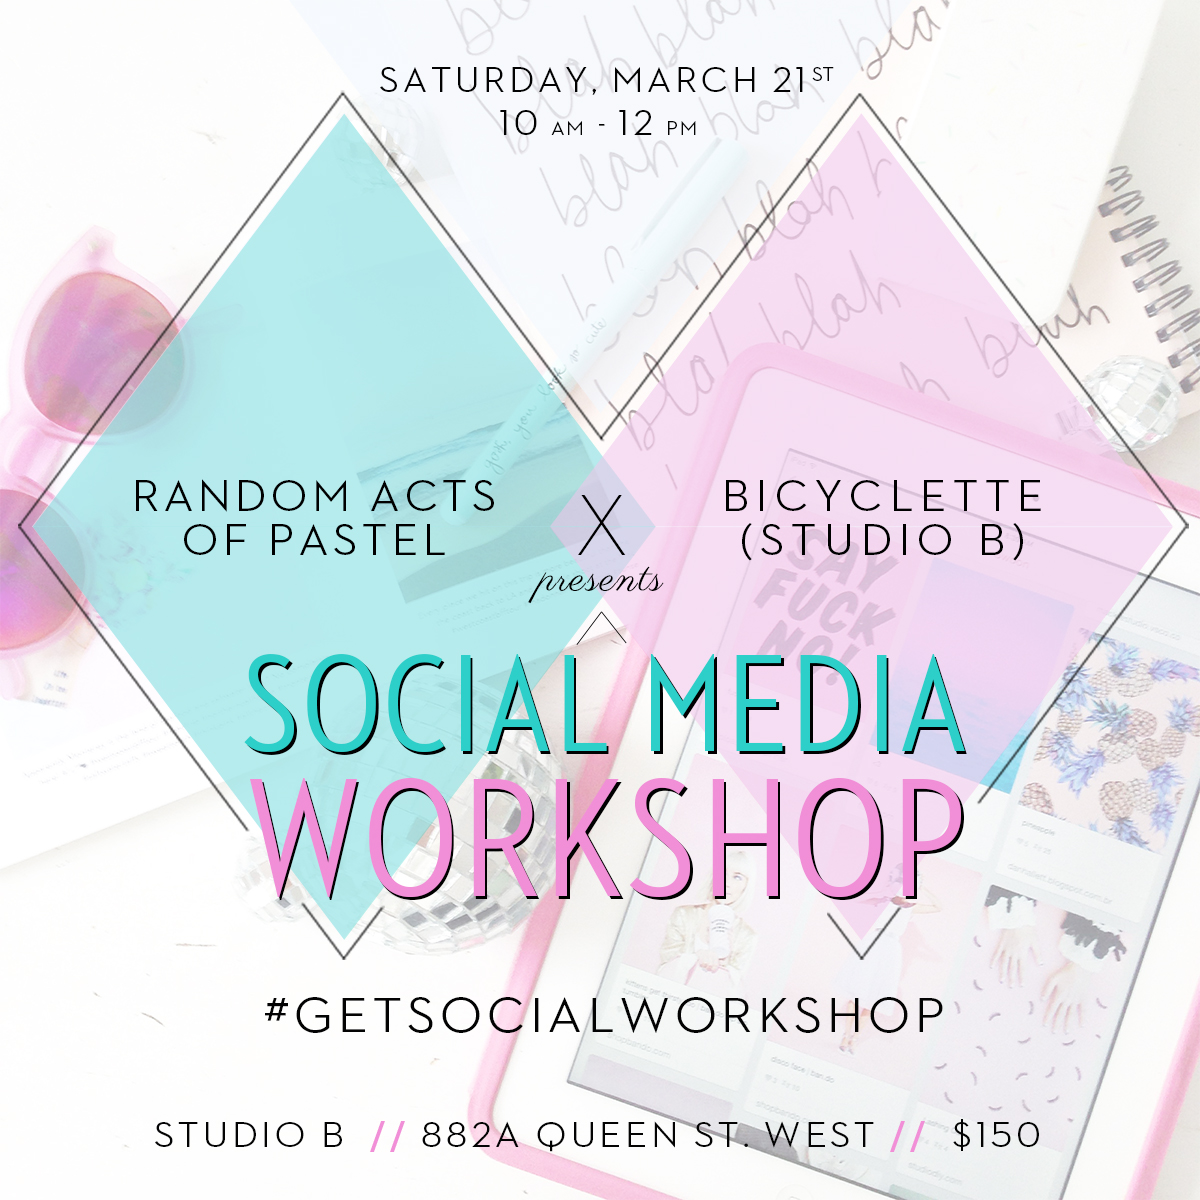 socialmediaworkshop_2015